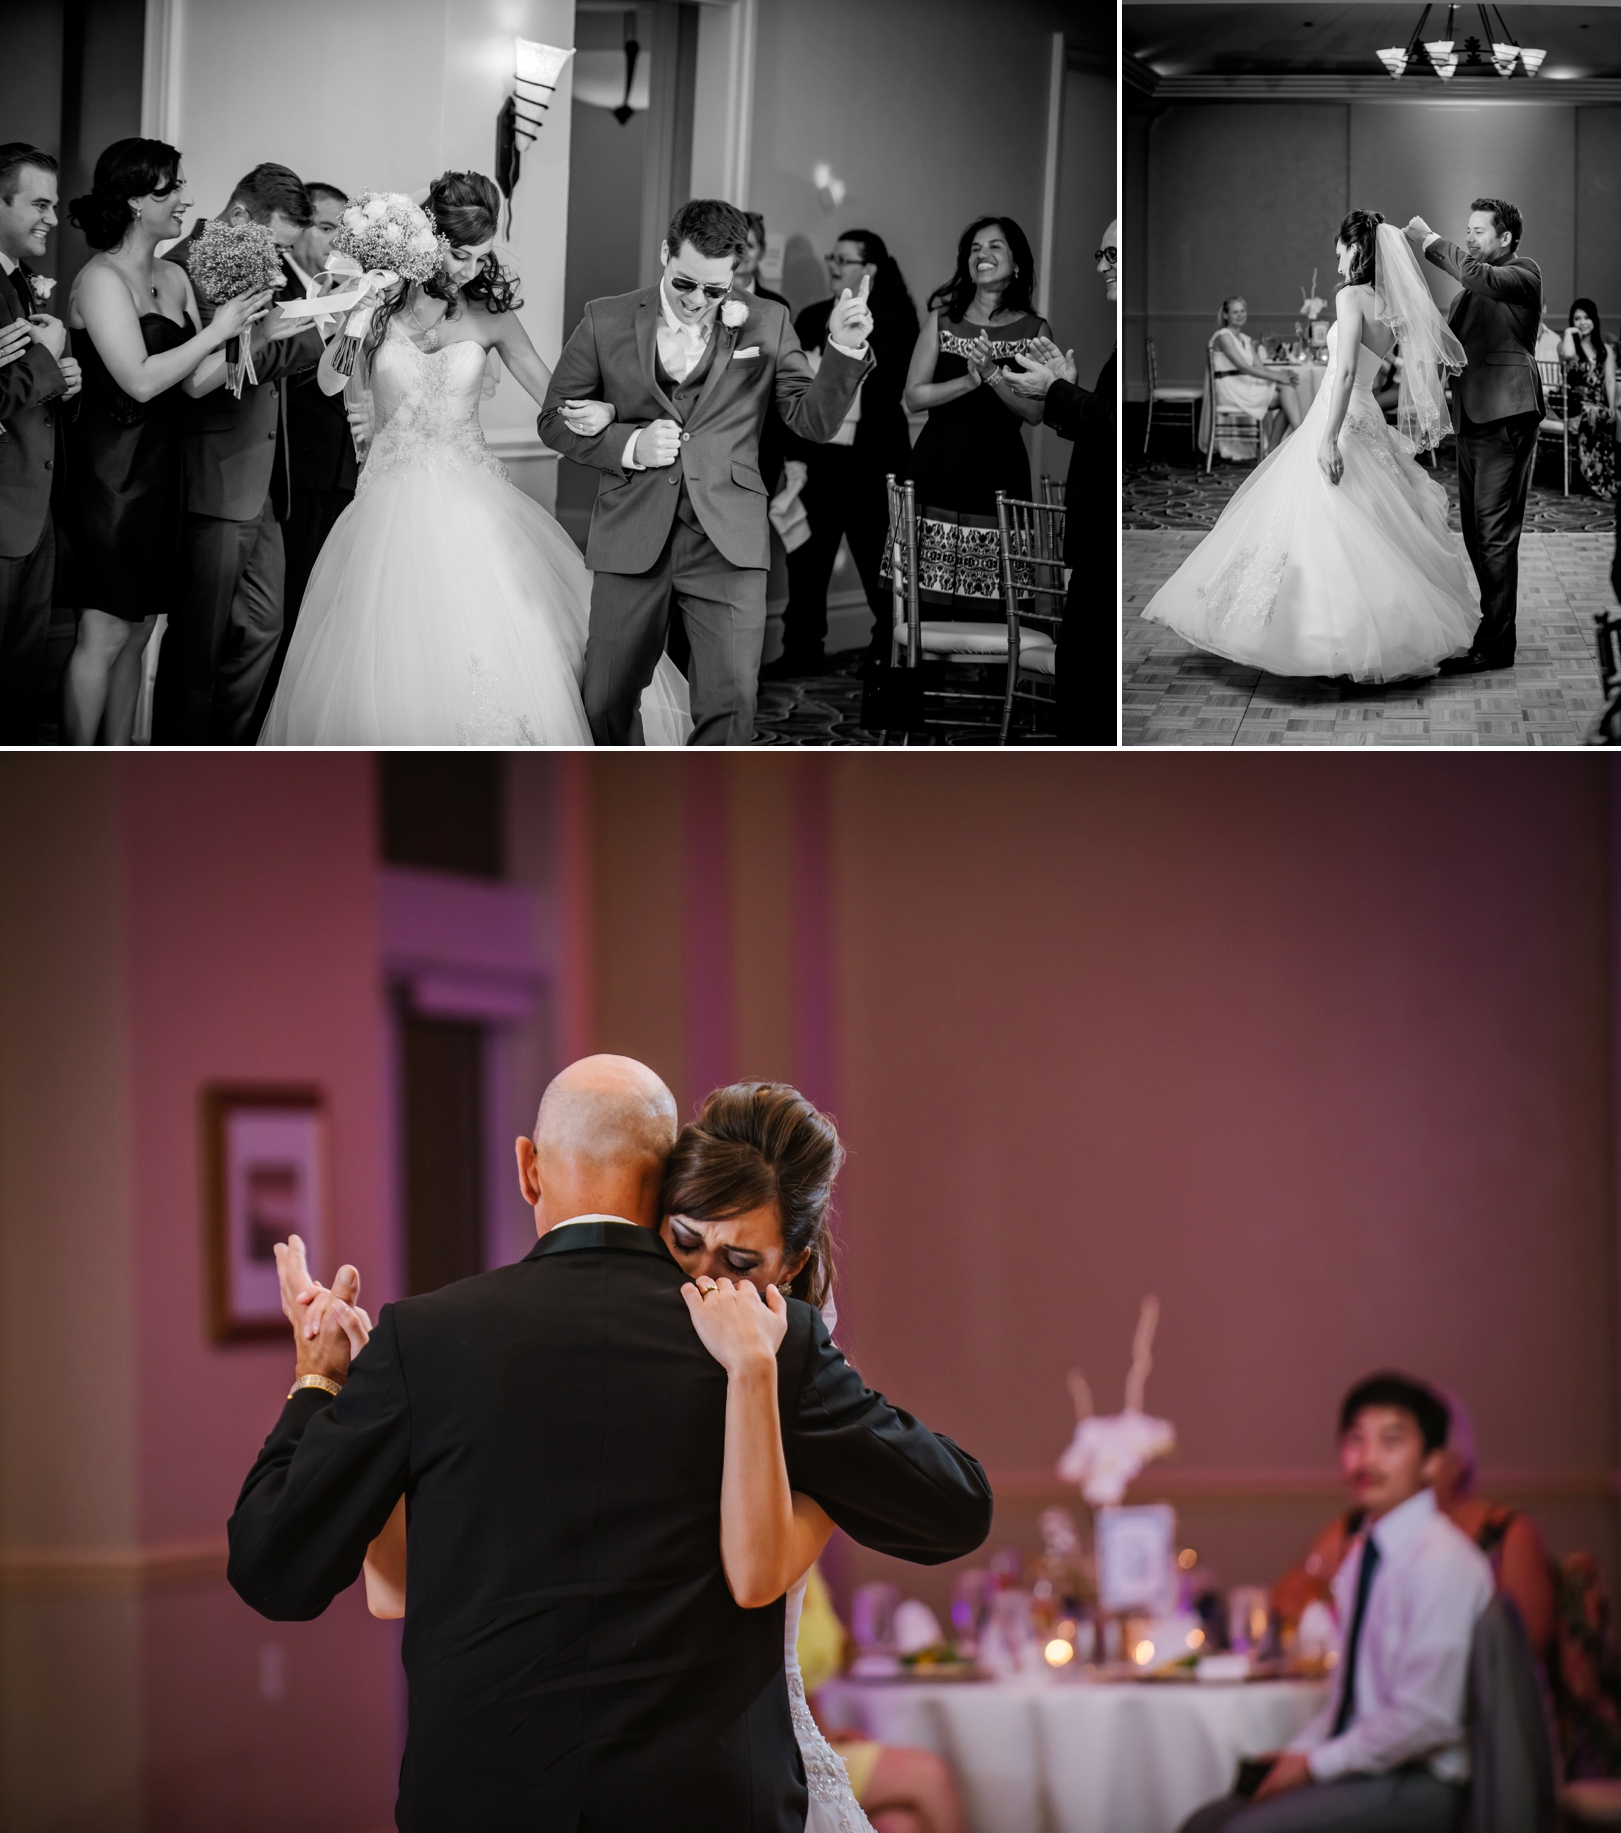 tampa-wedding-photography-traditional-cathedral-wedding_0020.jpg